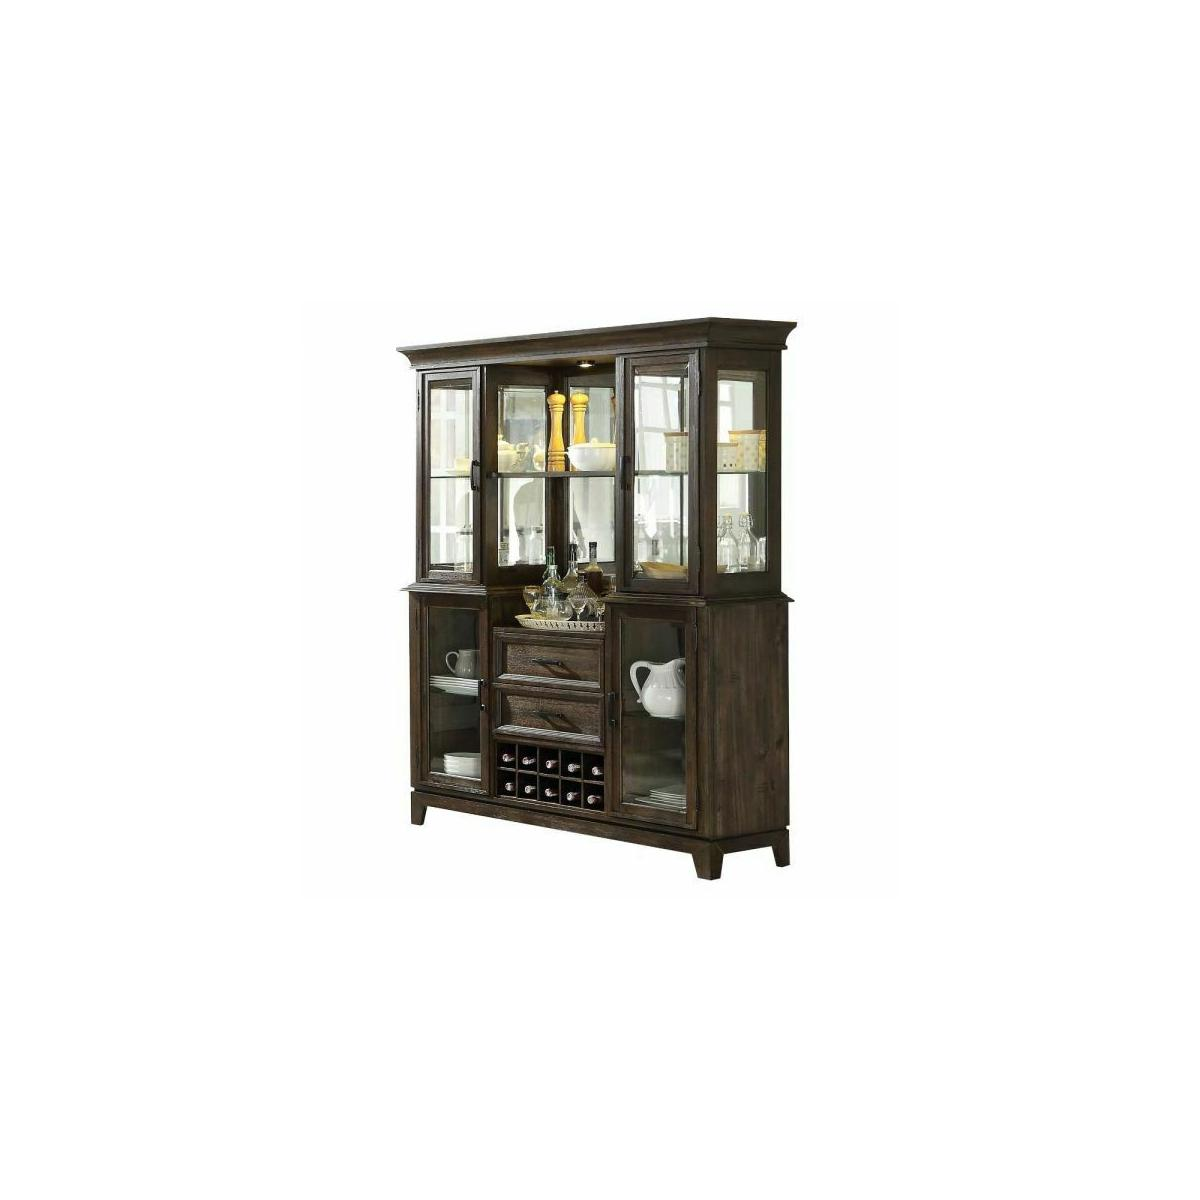 ACME Jameson Hutch & Buffet - 62323 - Espresso